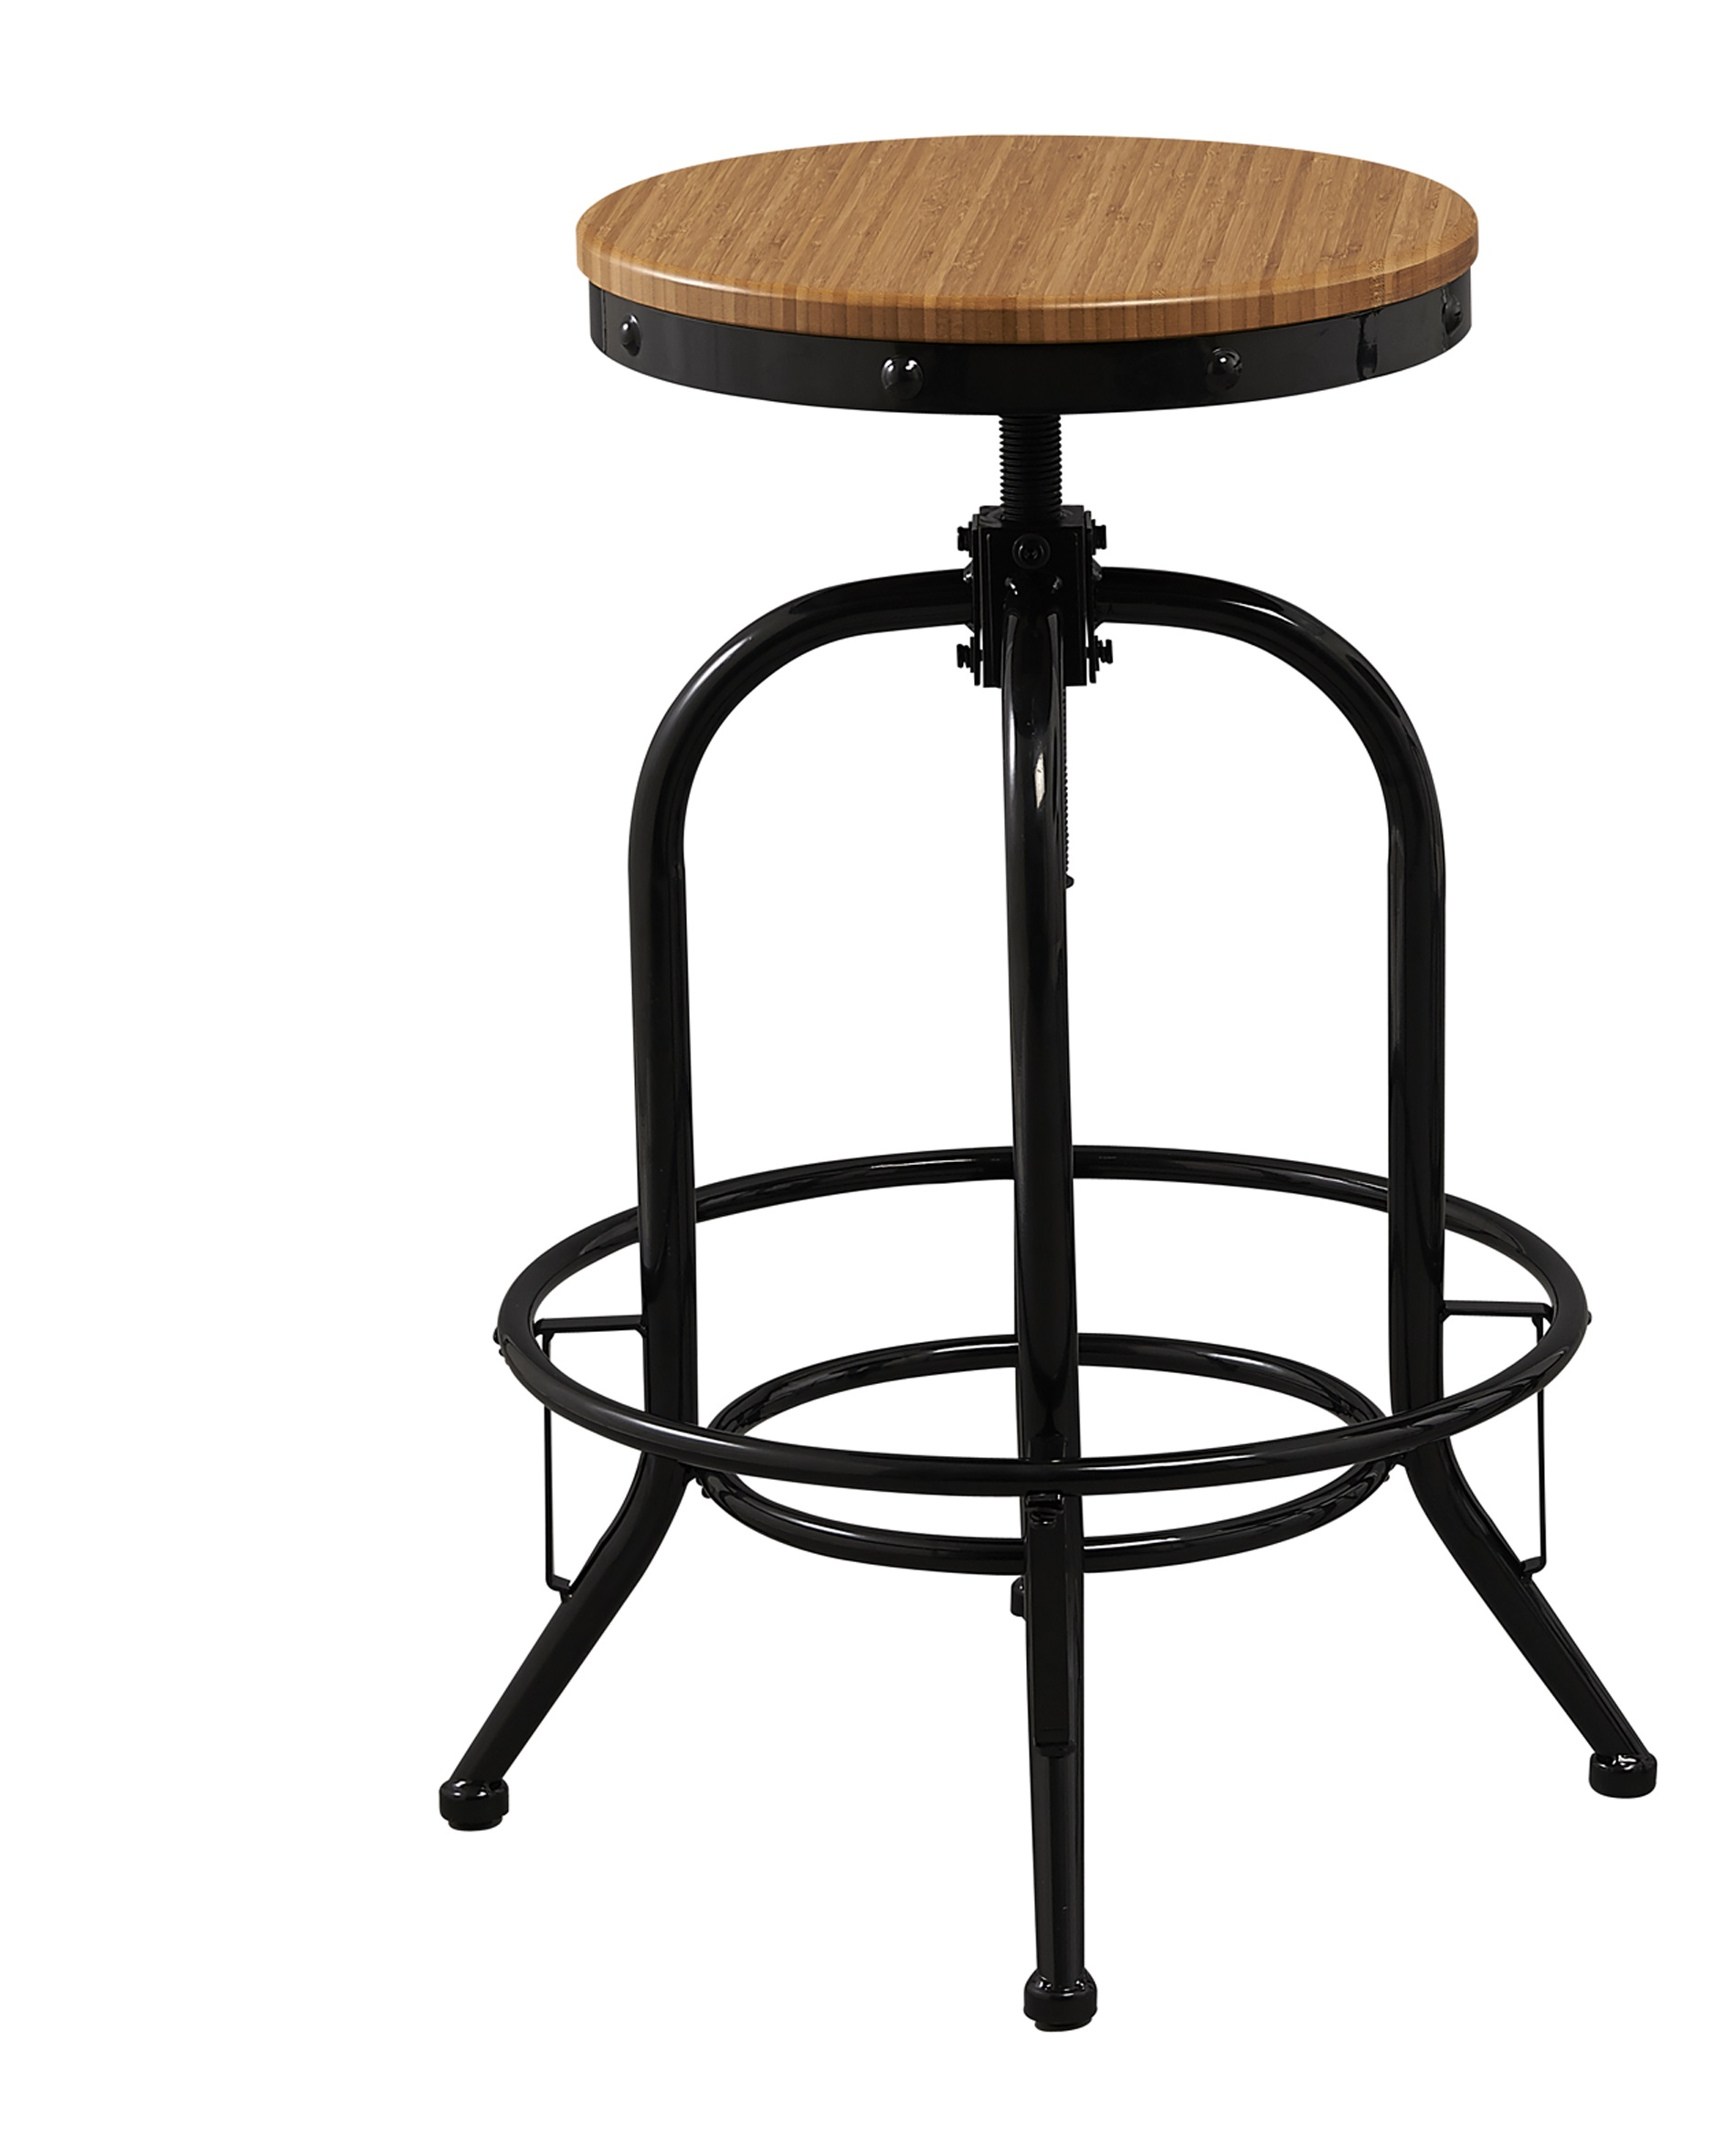 Solid industrial 24 26 30 or 32 bar stool counter bar height stool adjustable natural bamboo wood metal swivel barstool